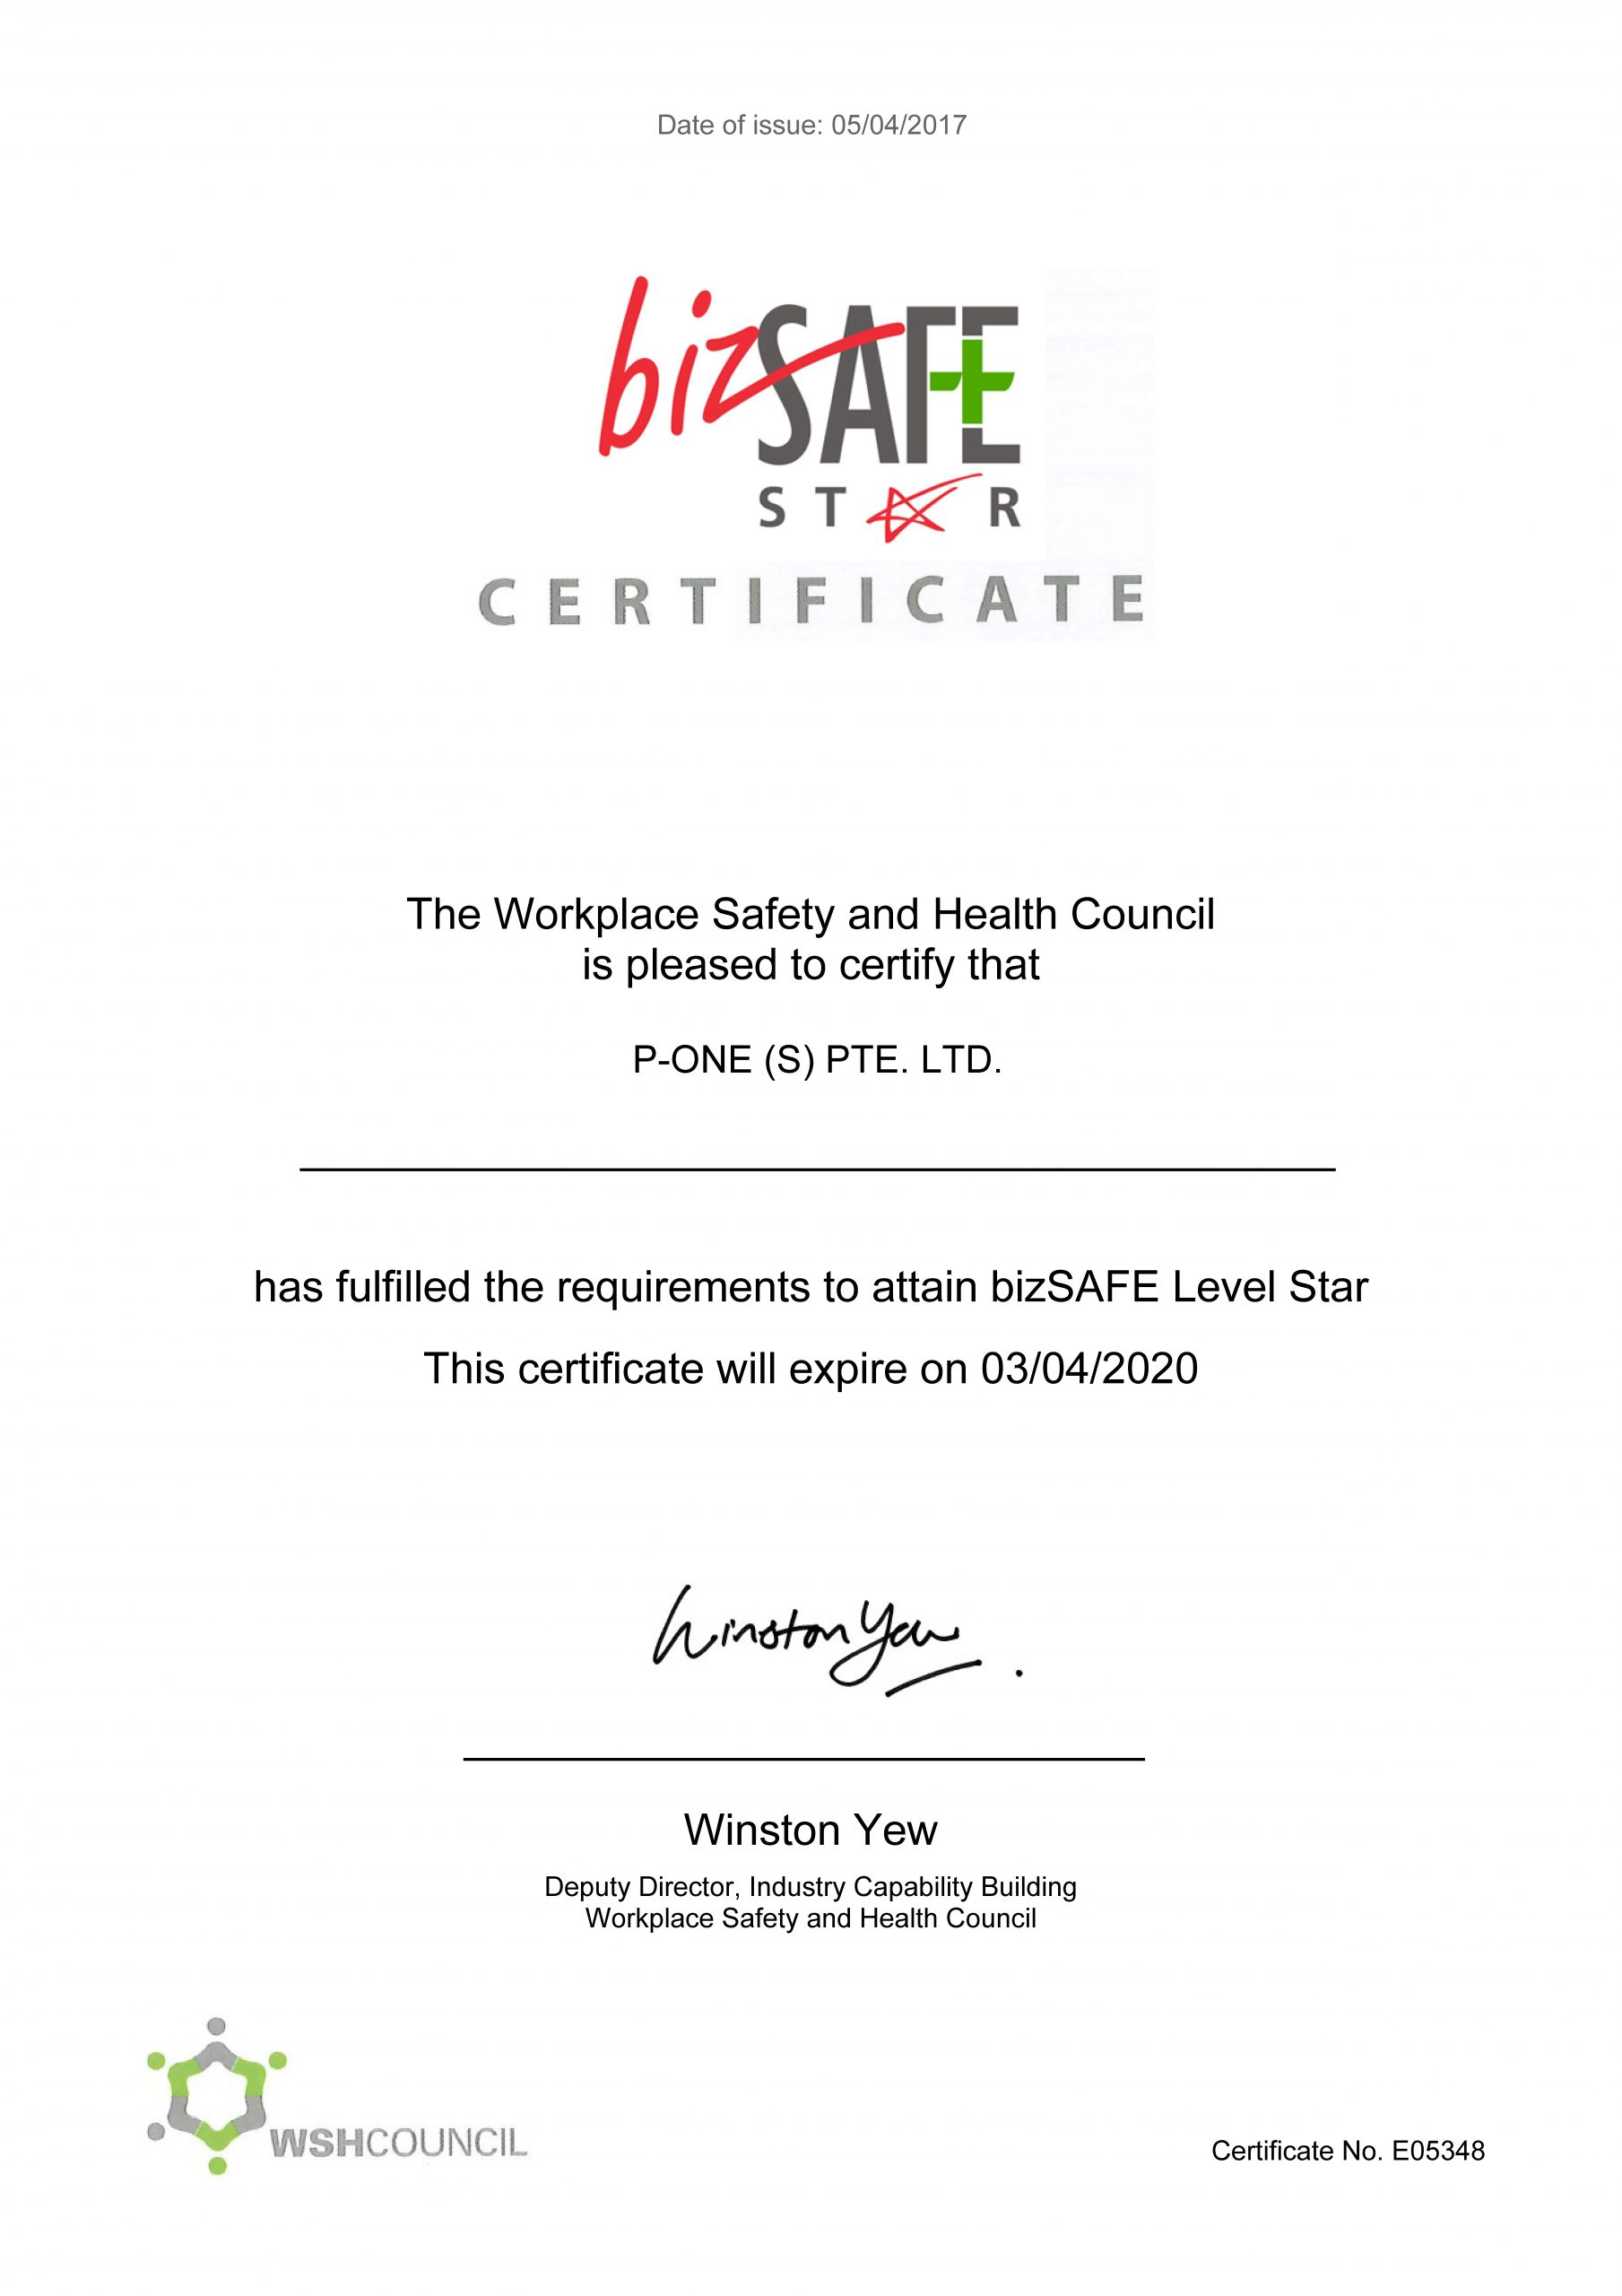 Workplace Safety and Health Management System